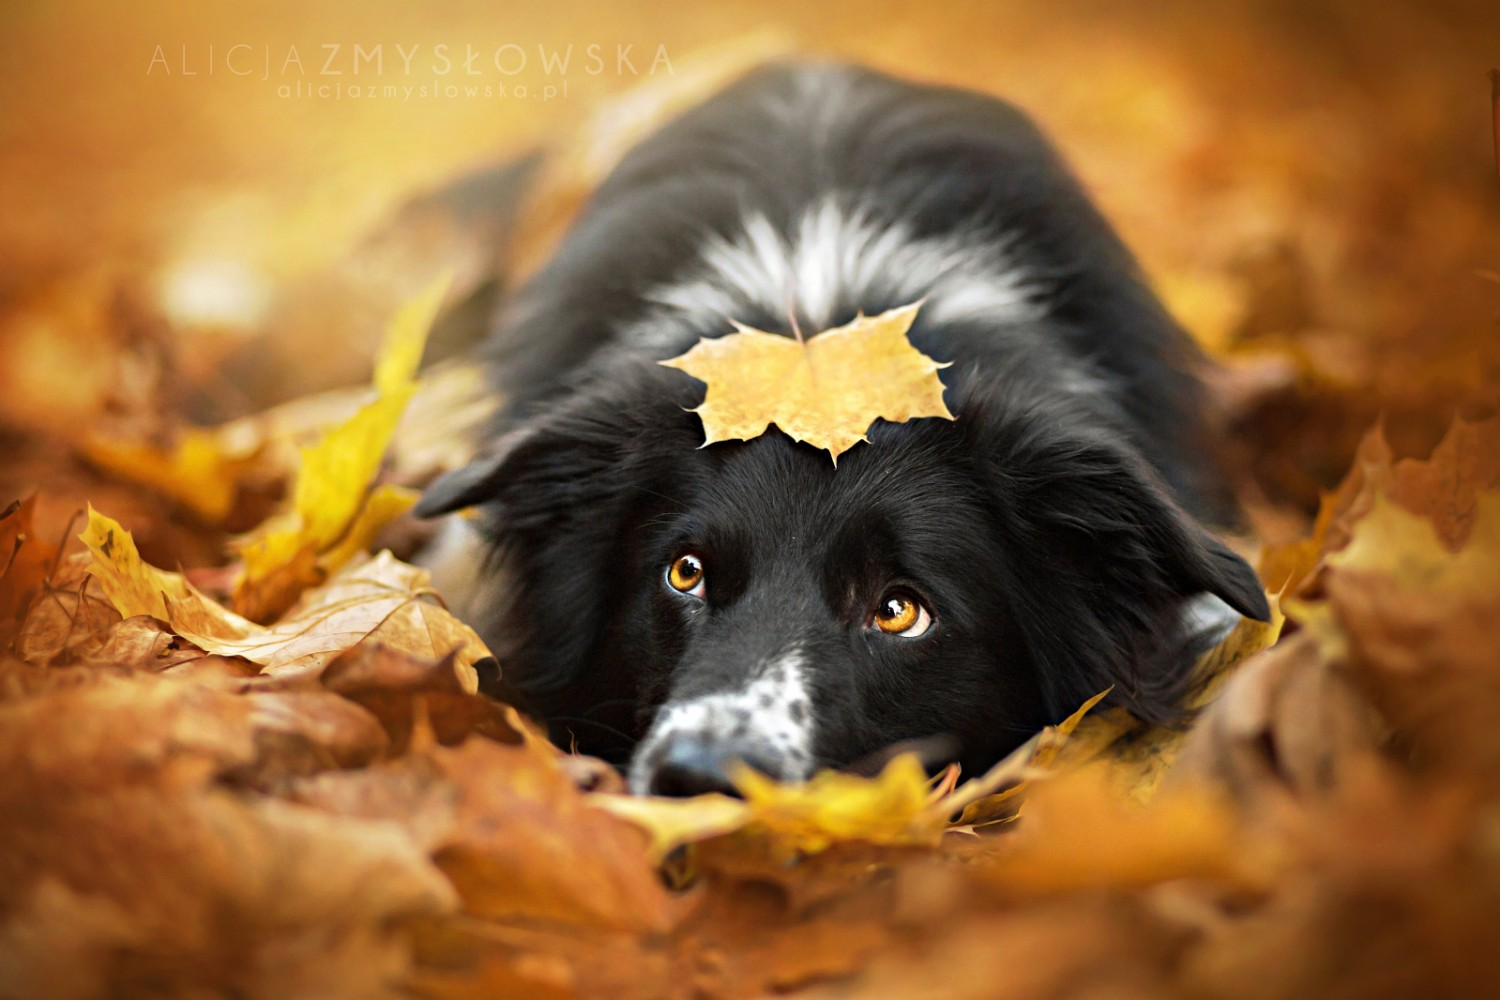 25 Most Popular Dog Photos on 500px